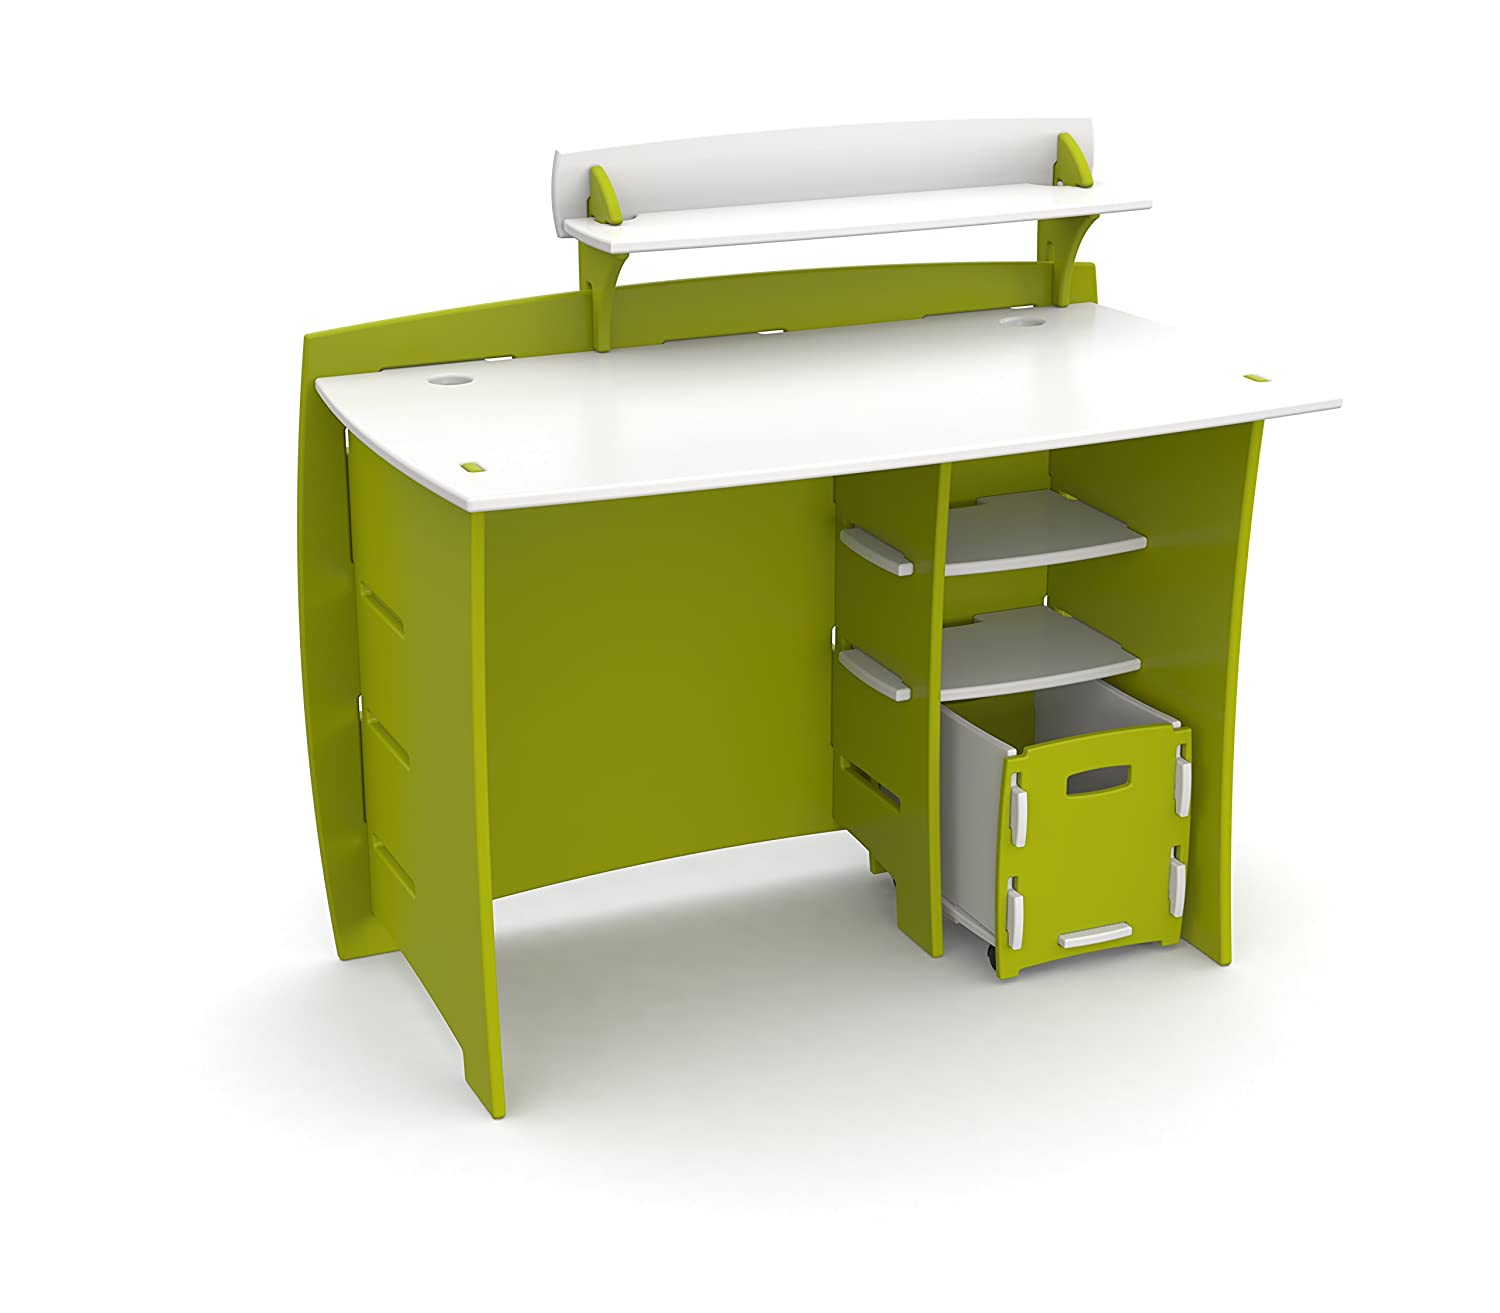 Design Desk For Kids amazon com kids furniture race car series collection no tools assembly 43 inch complete desk system with file